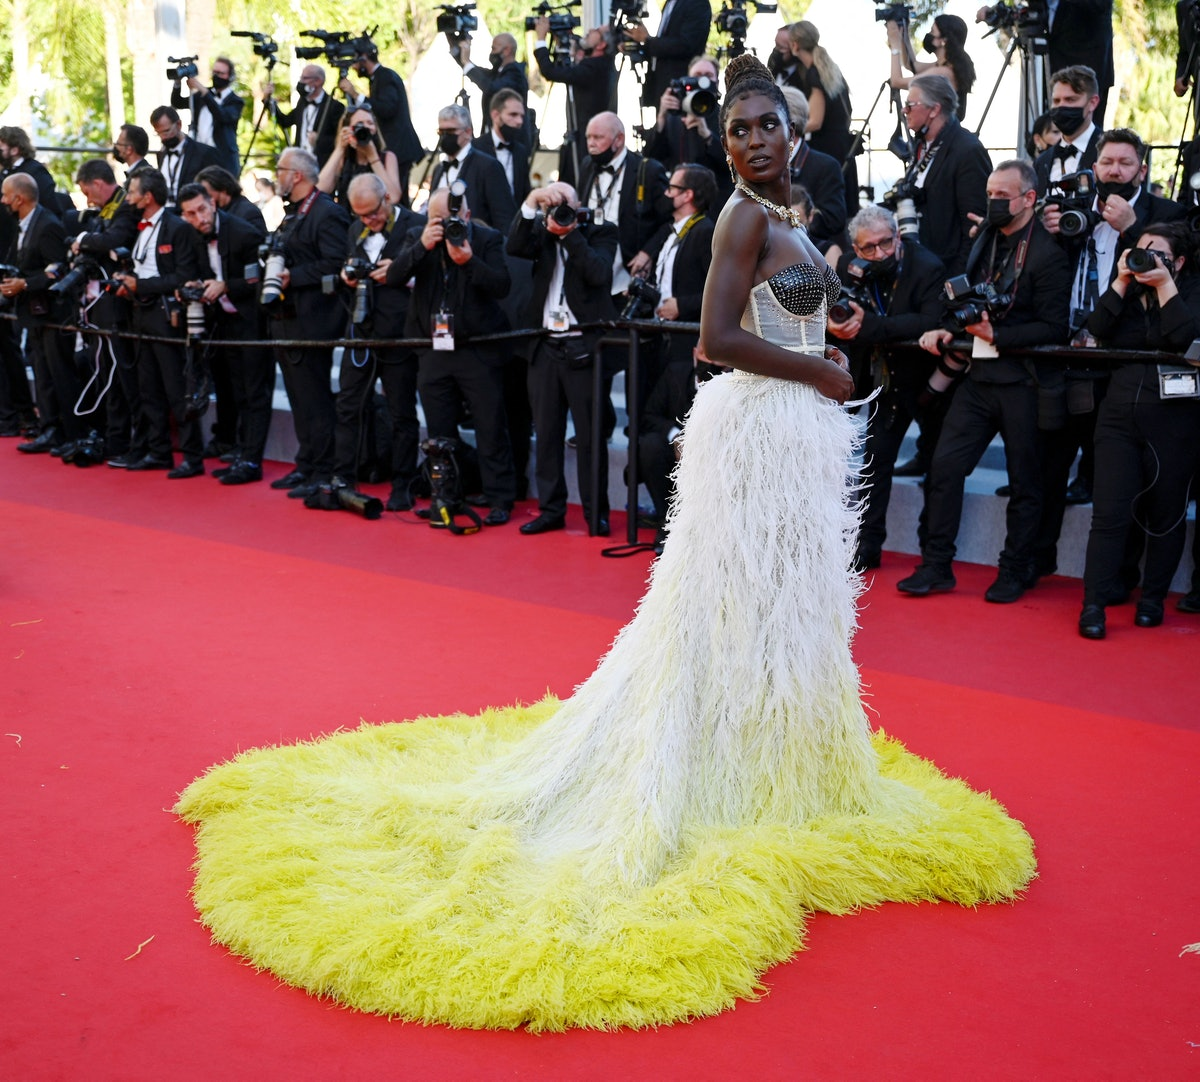 The show-stopping looks on the Cannes red carpet are some of the best of 2021 so far. From Bella Hadid's Schiaparelli necklace as a bra top to Jodie Turner-Smith's flowing Gucci train, here are the most memorable outfits.